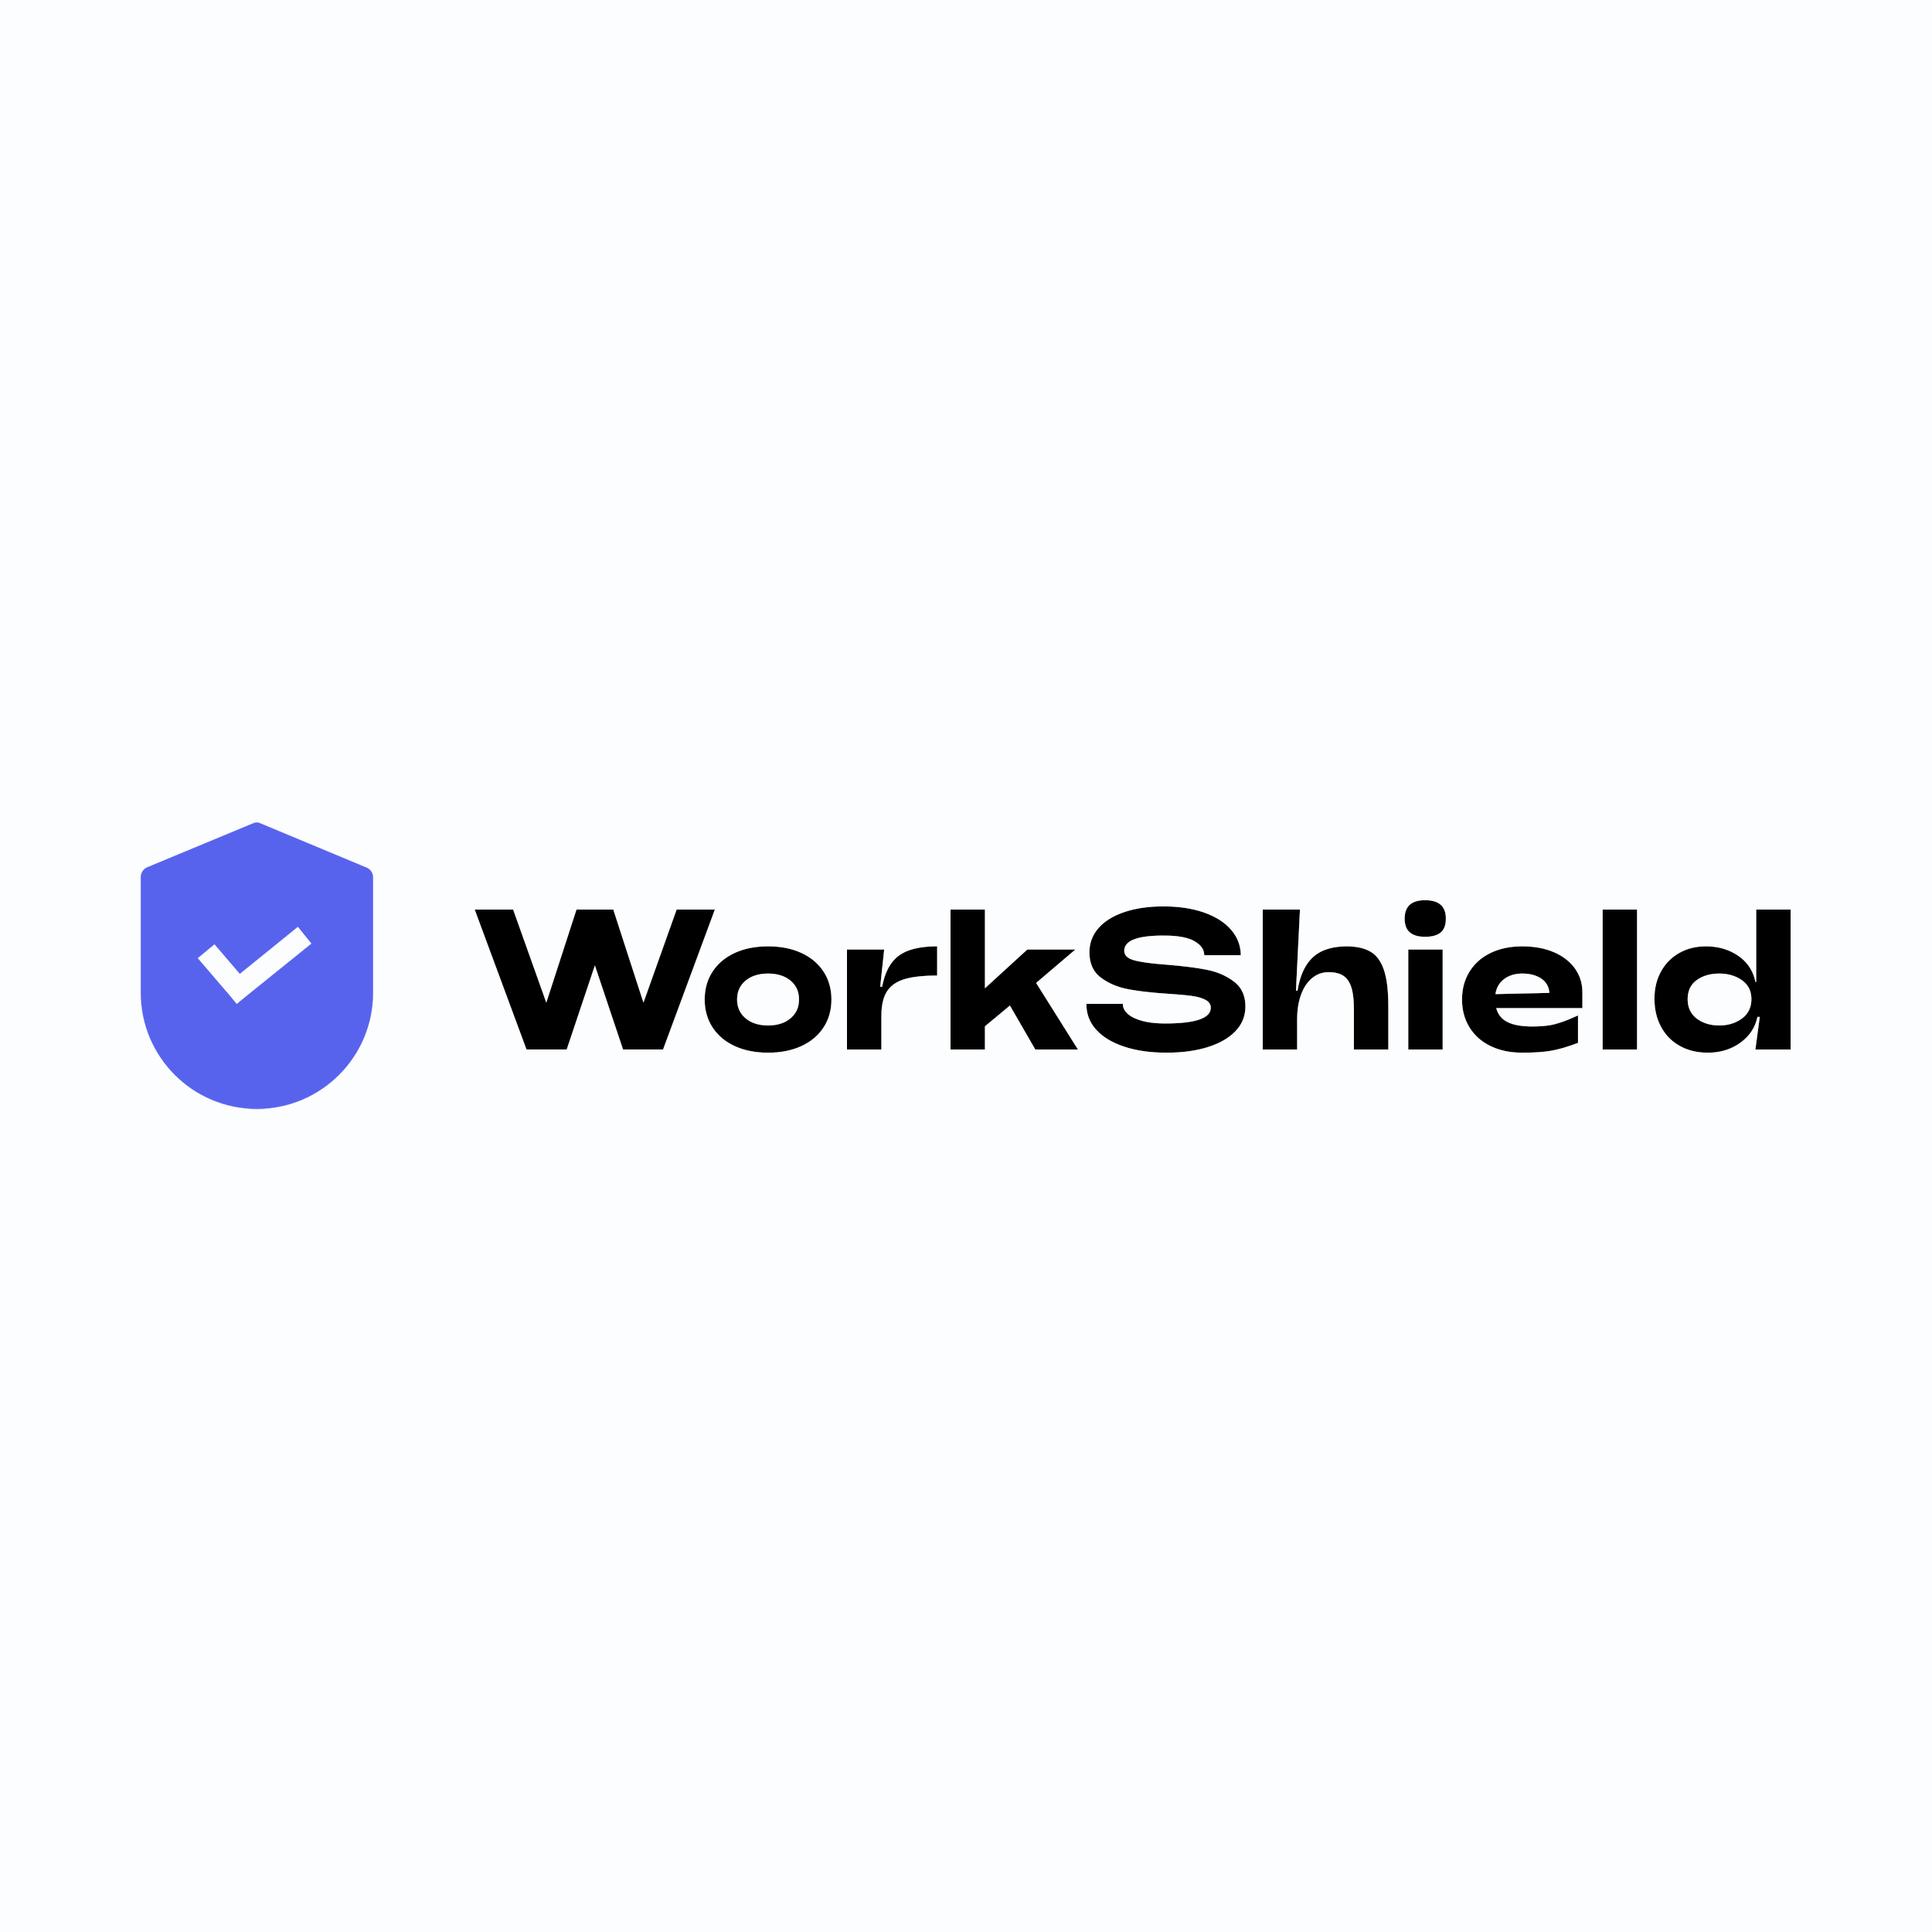 WorkShield